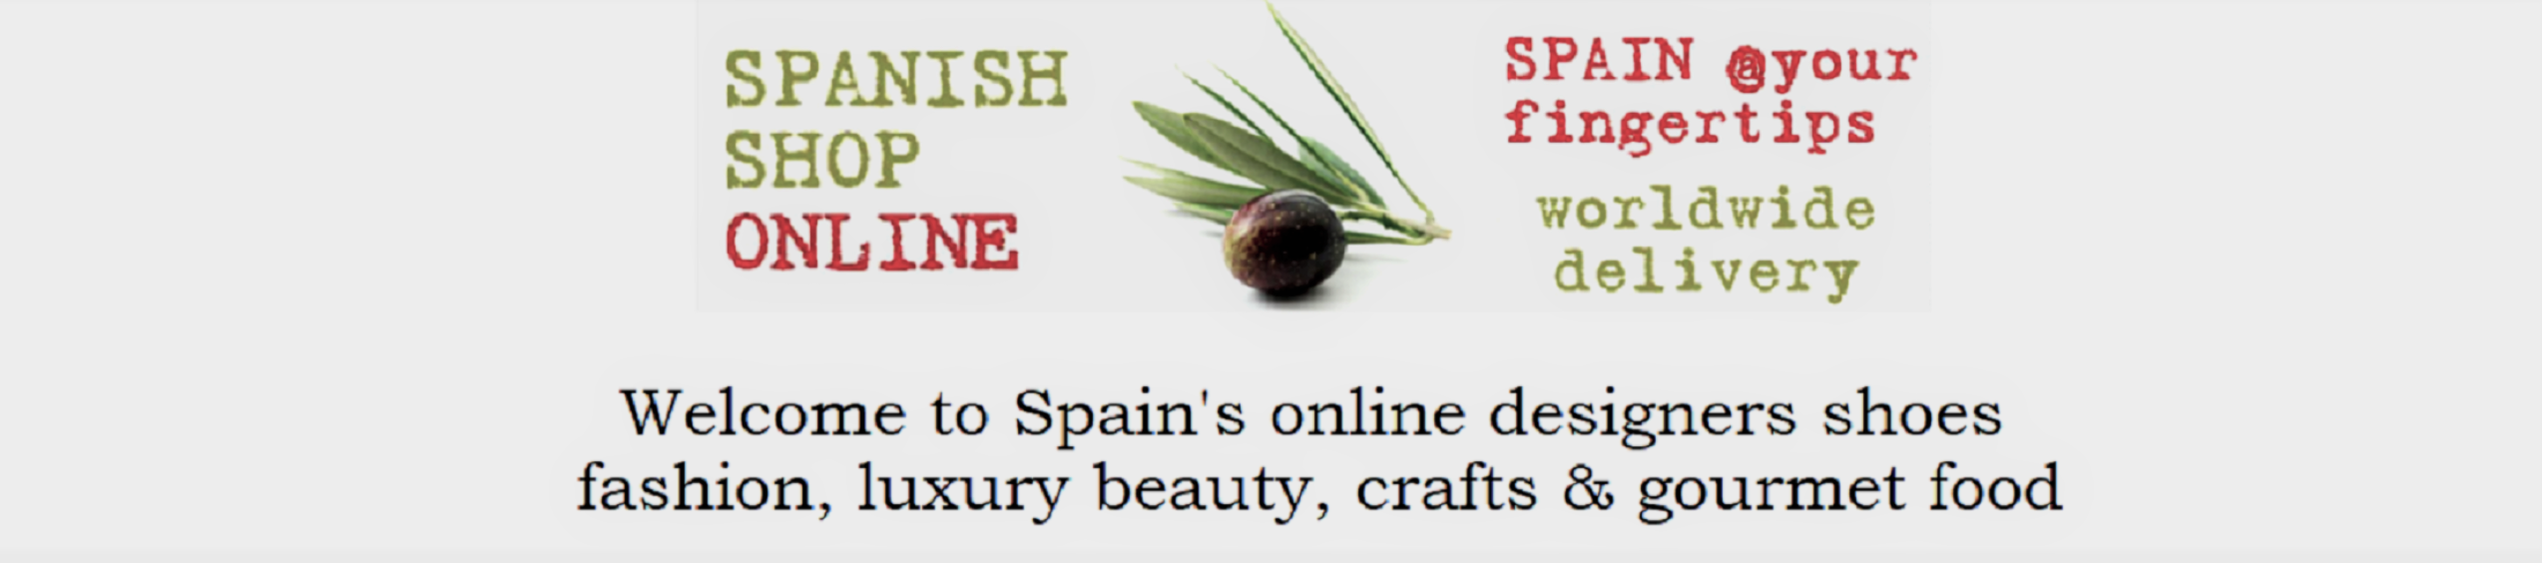 SPANISH SHOP ONLINE | Spain @ your fingertips